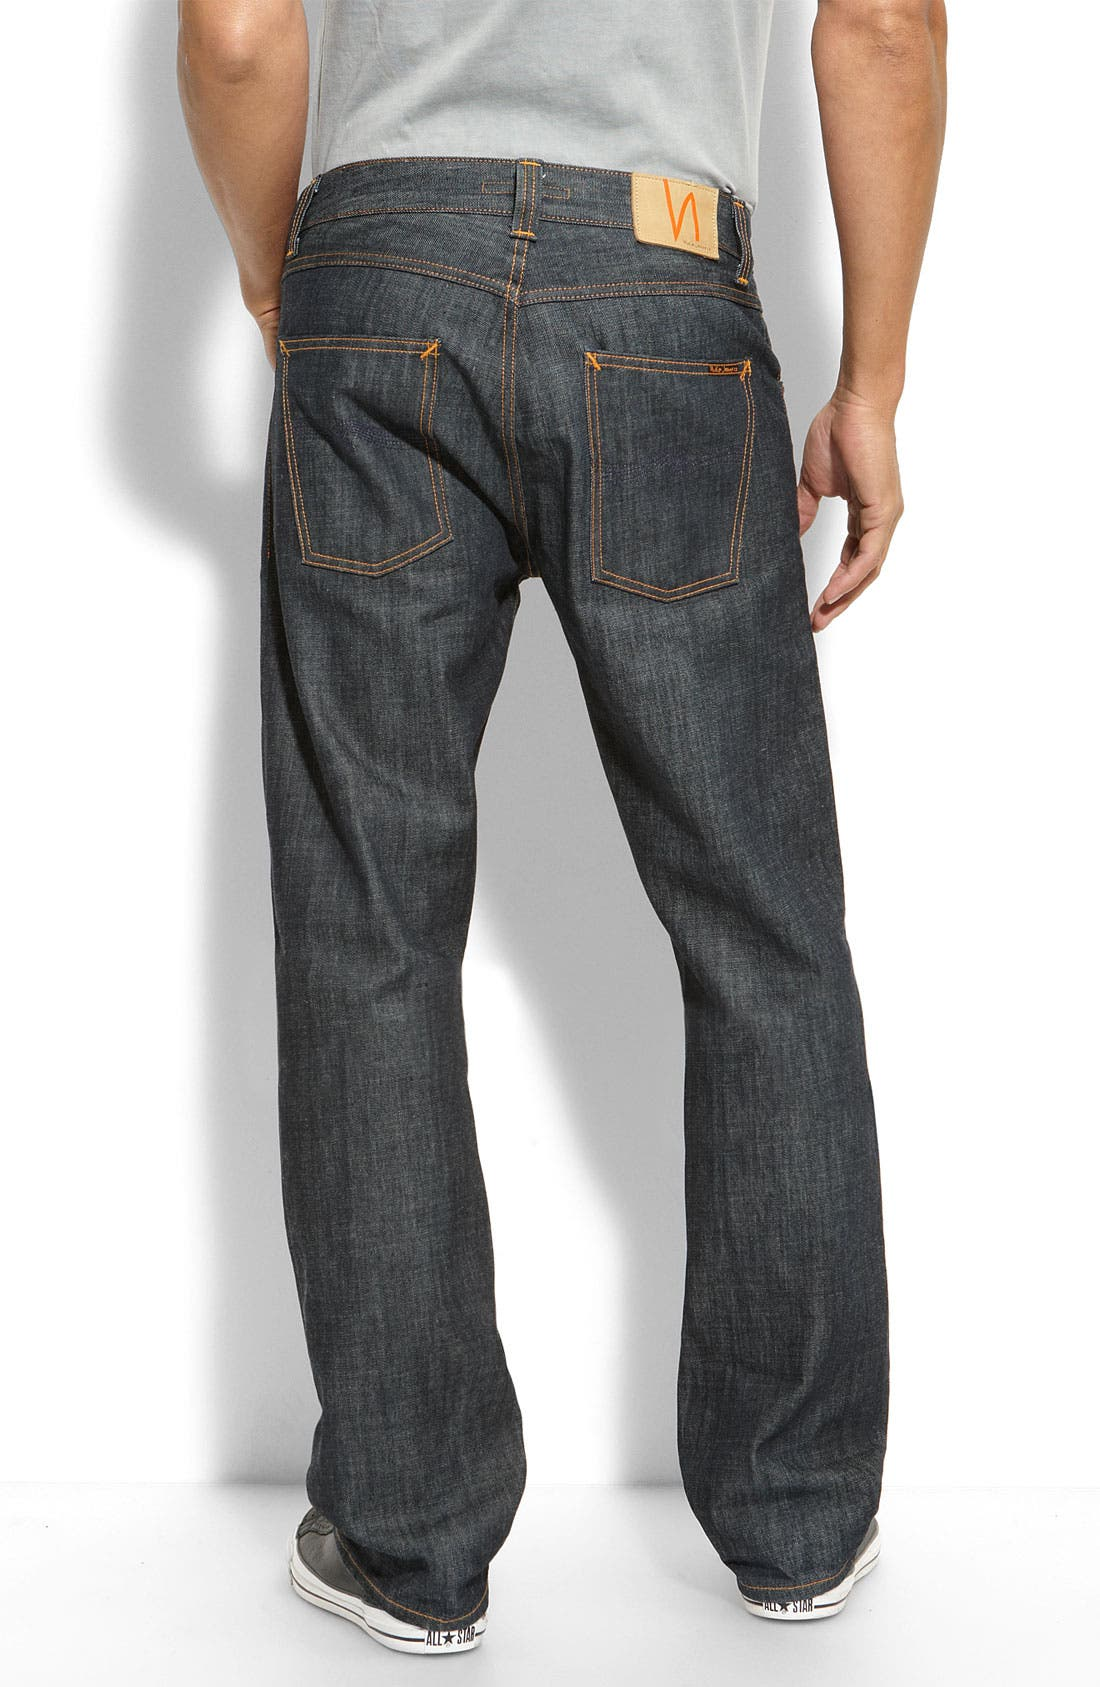 Alternate Image 1 Selected - Nudie 'Easy Emil' Relaxed Straight Leg Raw Jeans (Dry Organic Blue Wash)